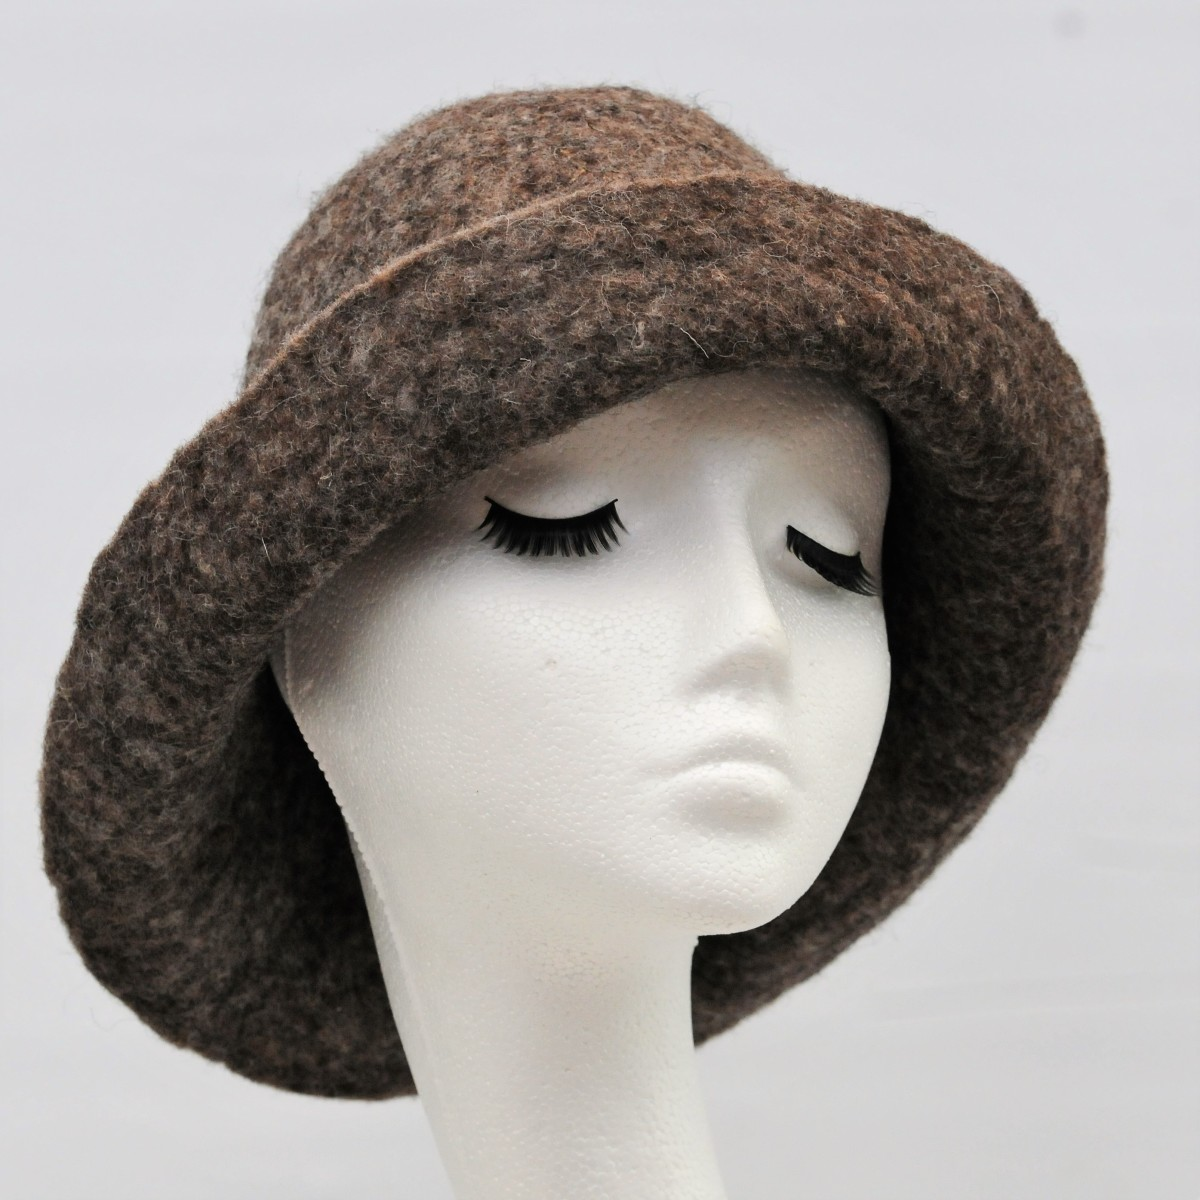 Wet Felted Hat